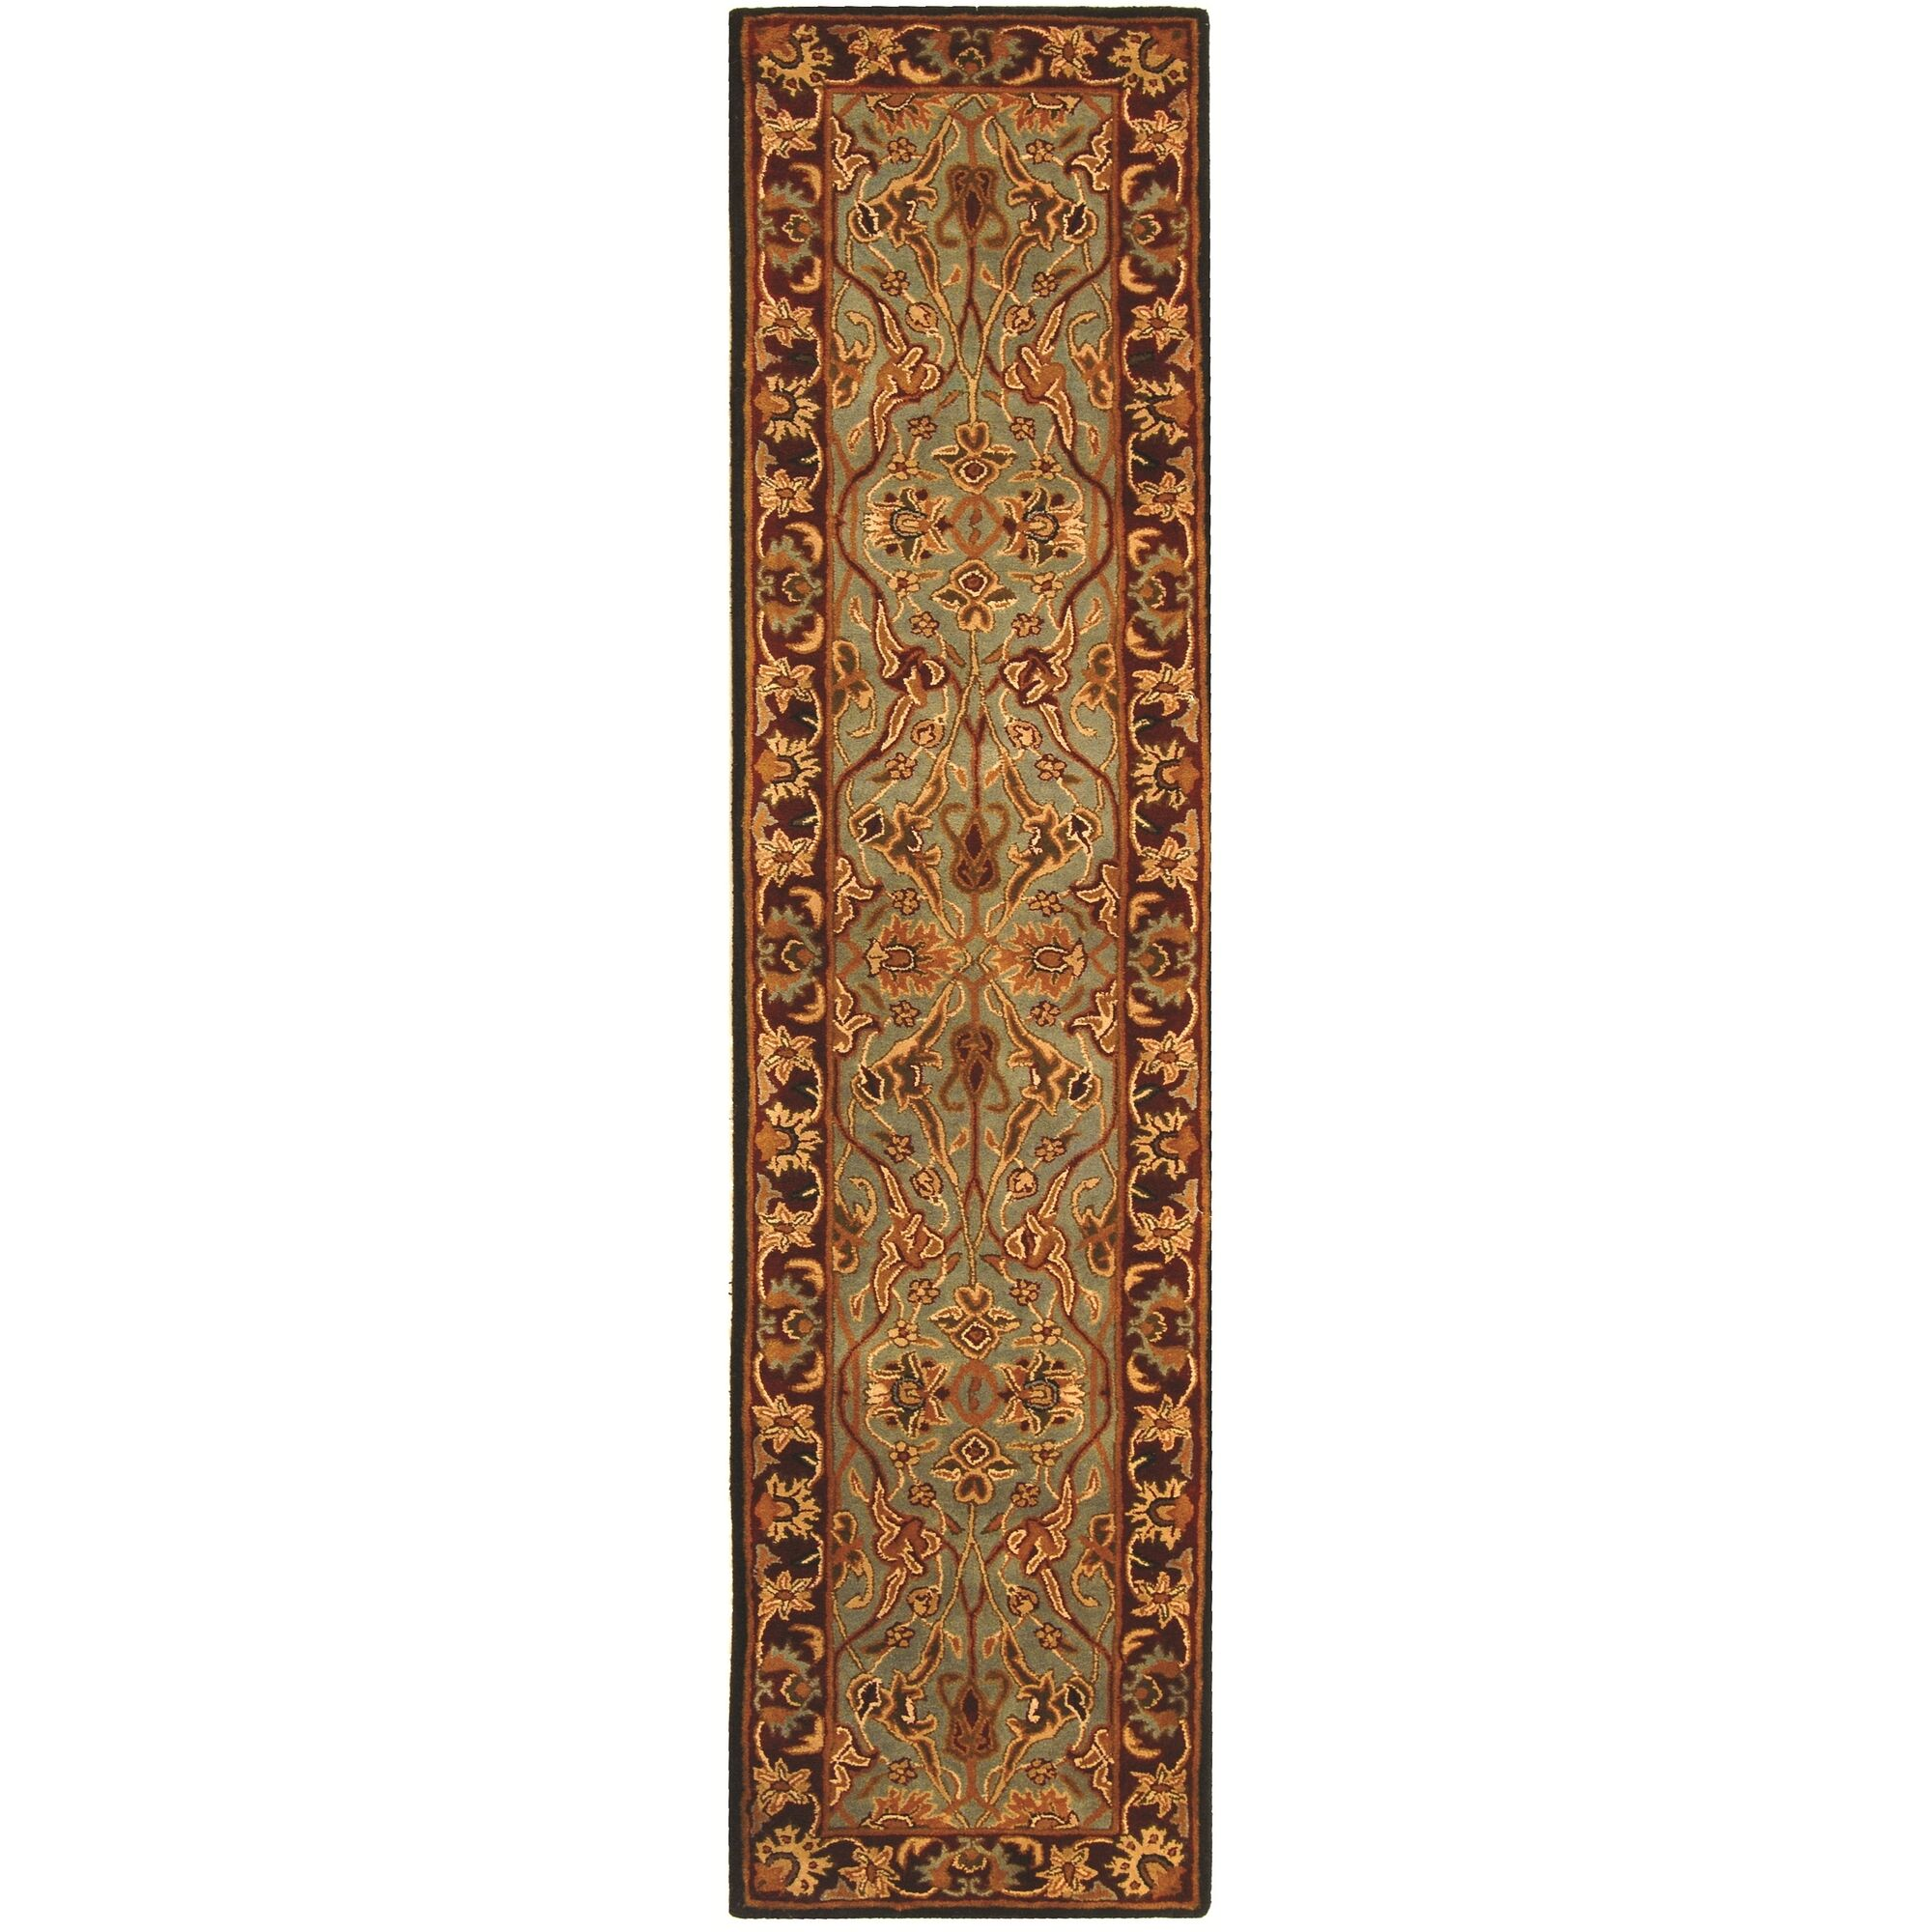 Balthrop Hand-Tufted Wool Red Area Rug Rug Size: Runner 2'3